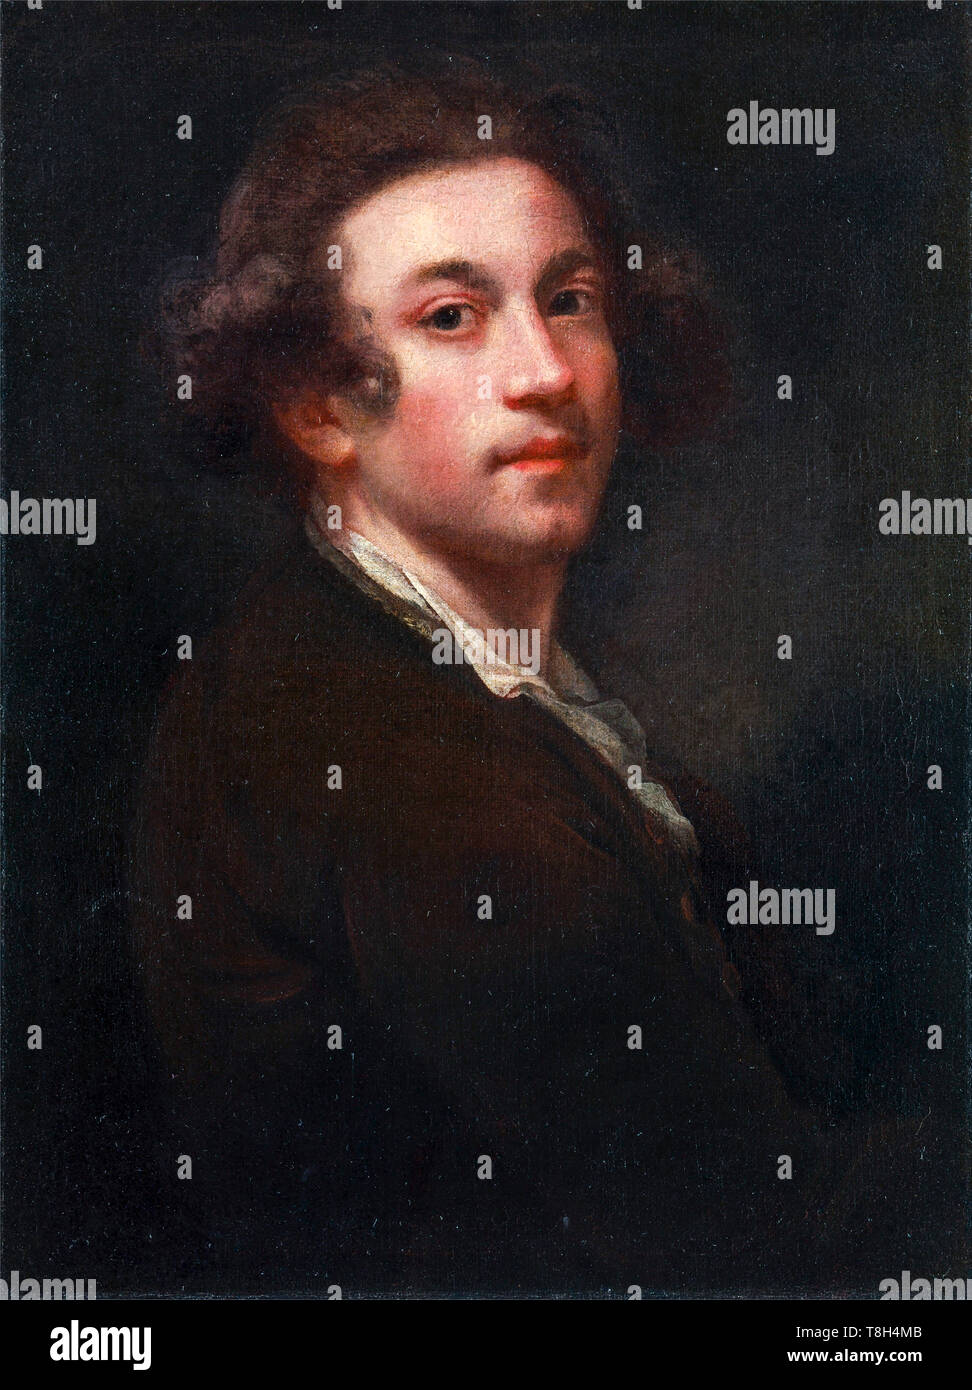 Sir Joshua Reynolds (1723–1792), Self Portrait, painting c. 1750 aged 27 - Stock Image